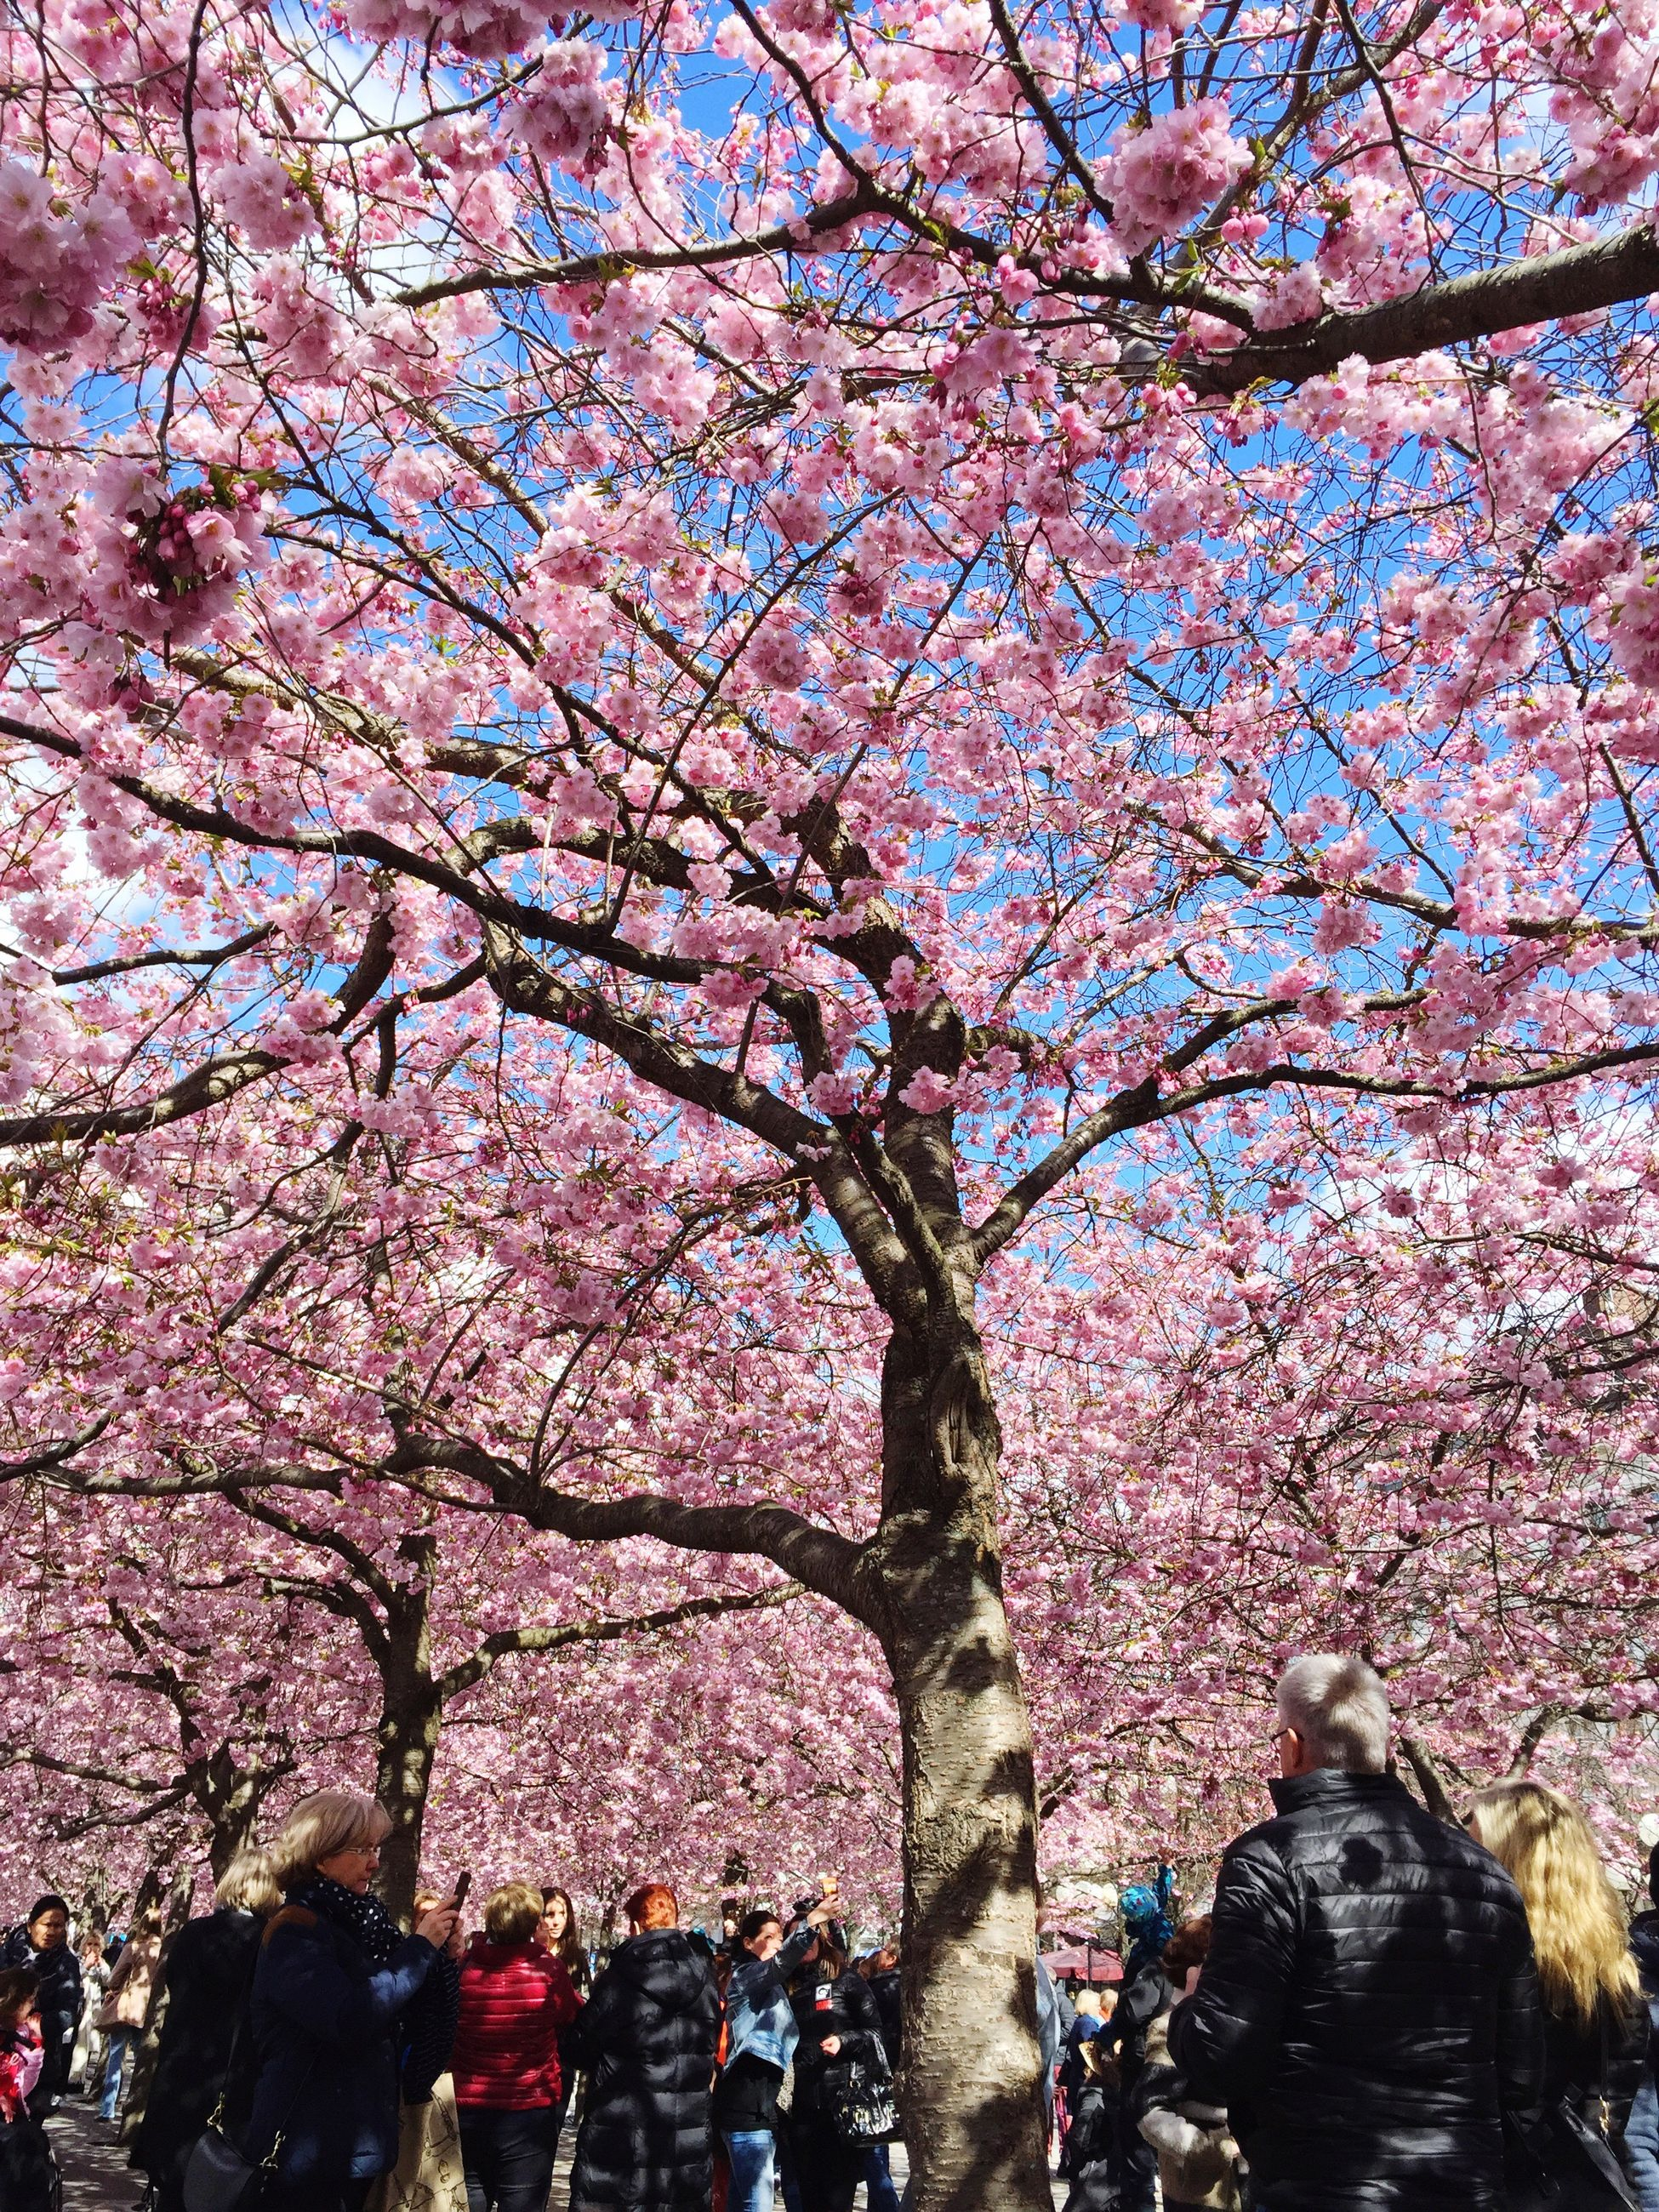 tree, flower, cherry blossom, cherry tree, branch, large group of people, blossom, person, pink color, growth, freshness, men, lifestyles, springtime, nature, beauty in nature, fragility, leisure activity, low angle view